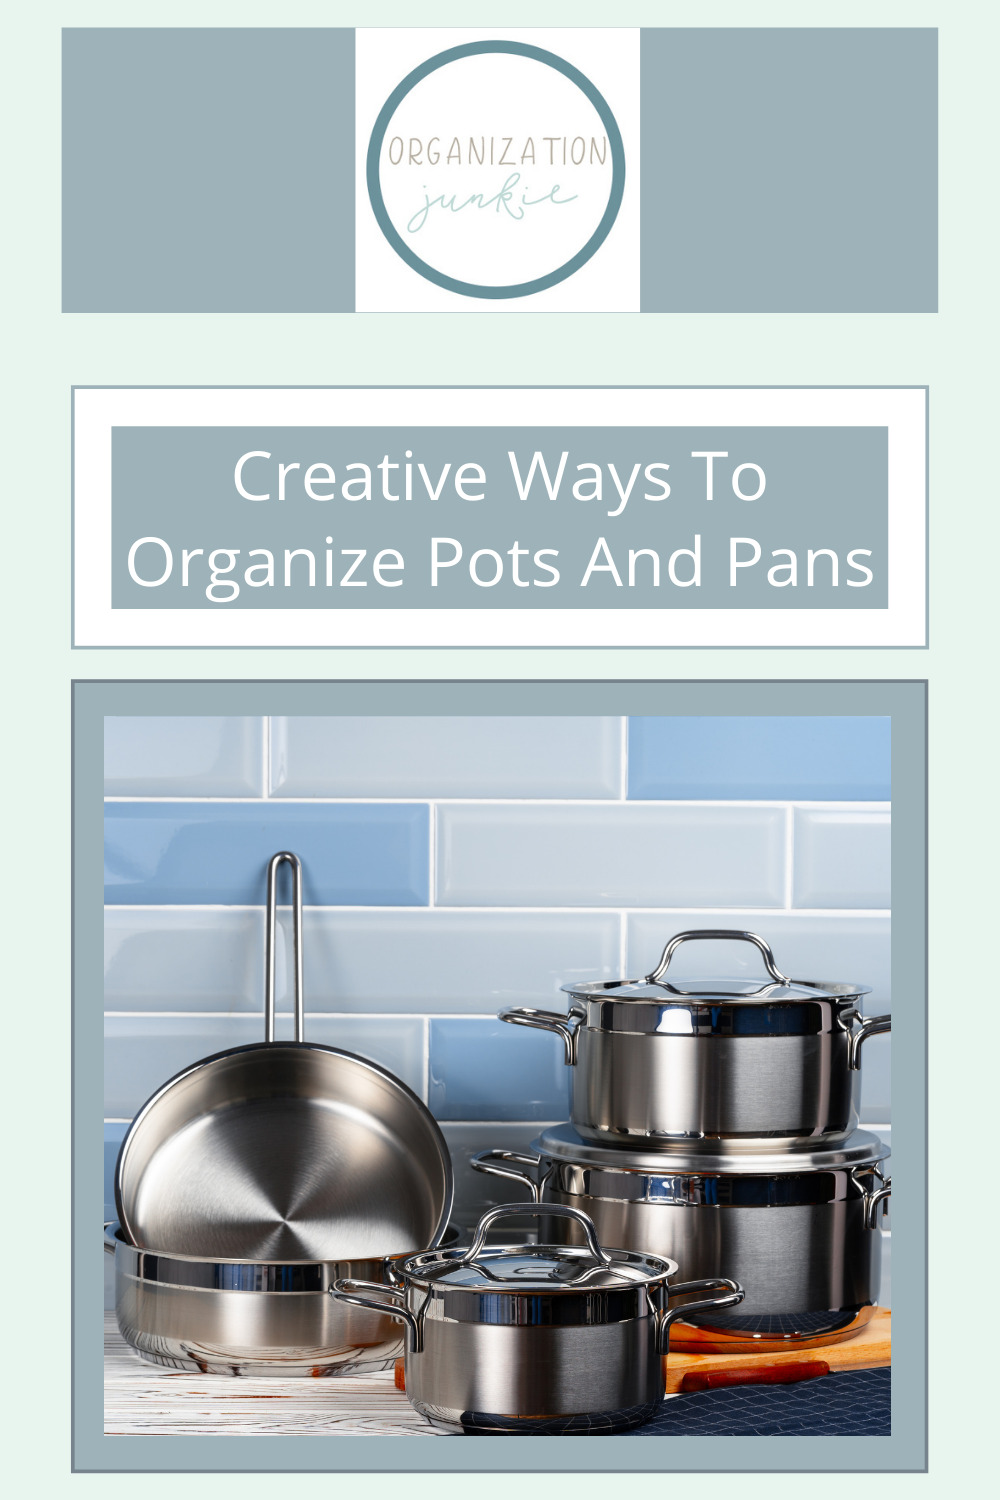 Organizationjunkie.com is the ultimate resource for creative organization and cleaning solutions! Don't let your kitchen feel crowded and cluttered! Check out these awesome ideas for organizing your pots and pans.